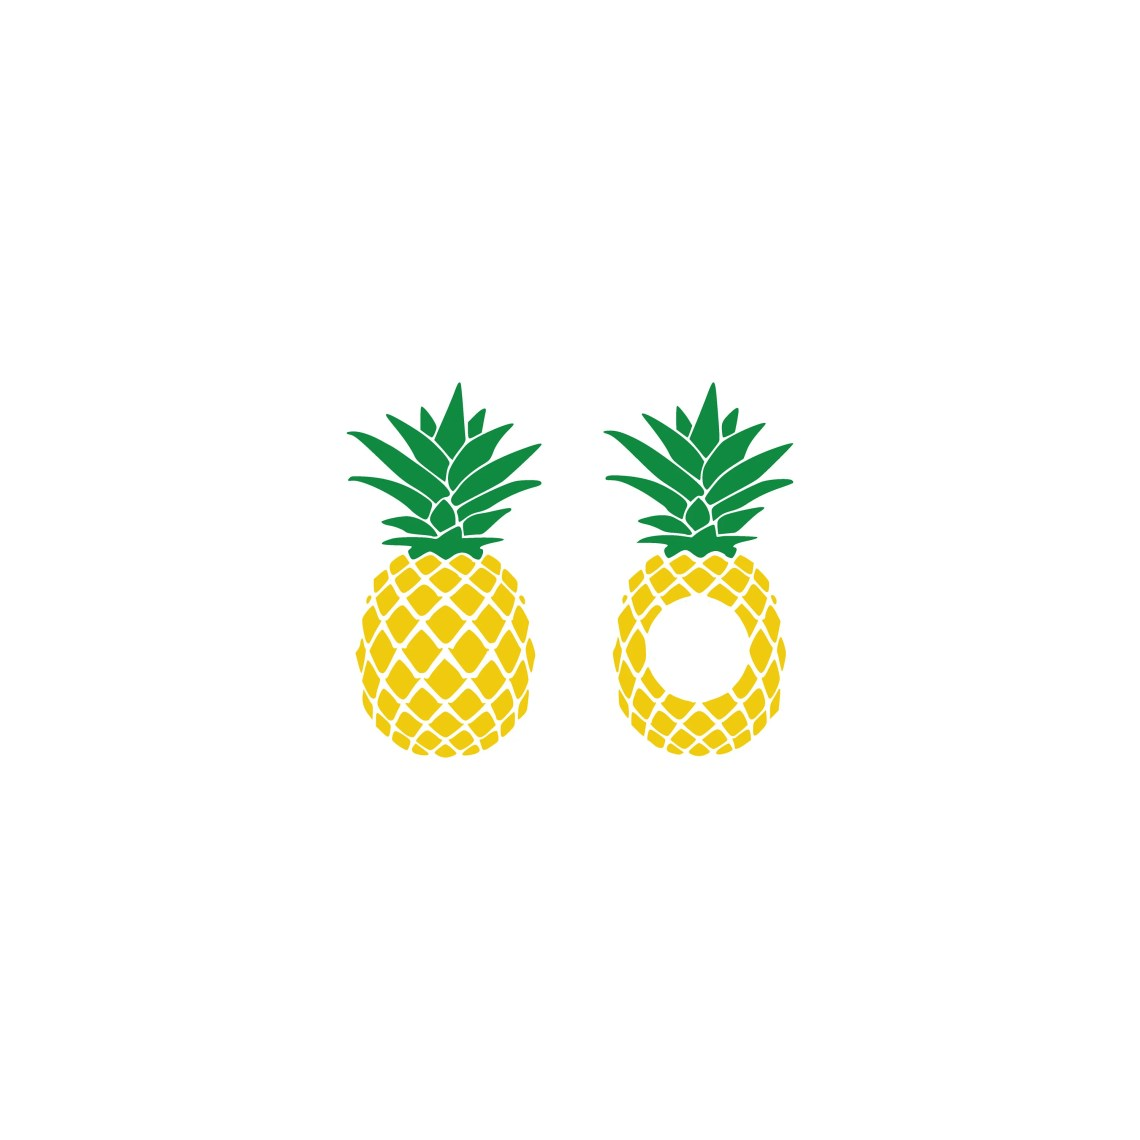 Download Pineapple svg pineapple svg file pineapple print pineapple